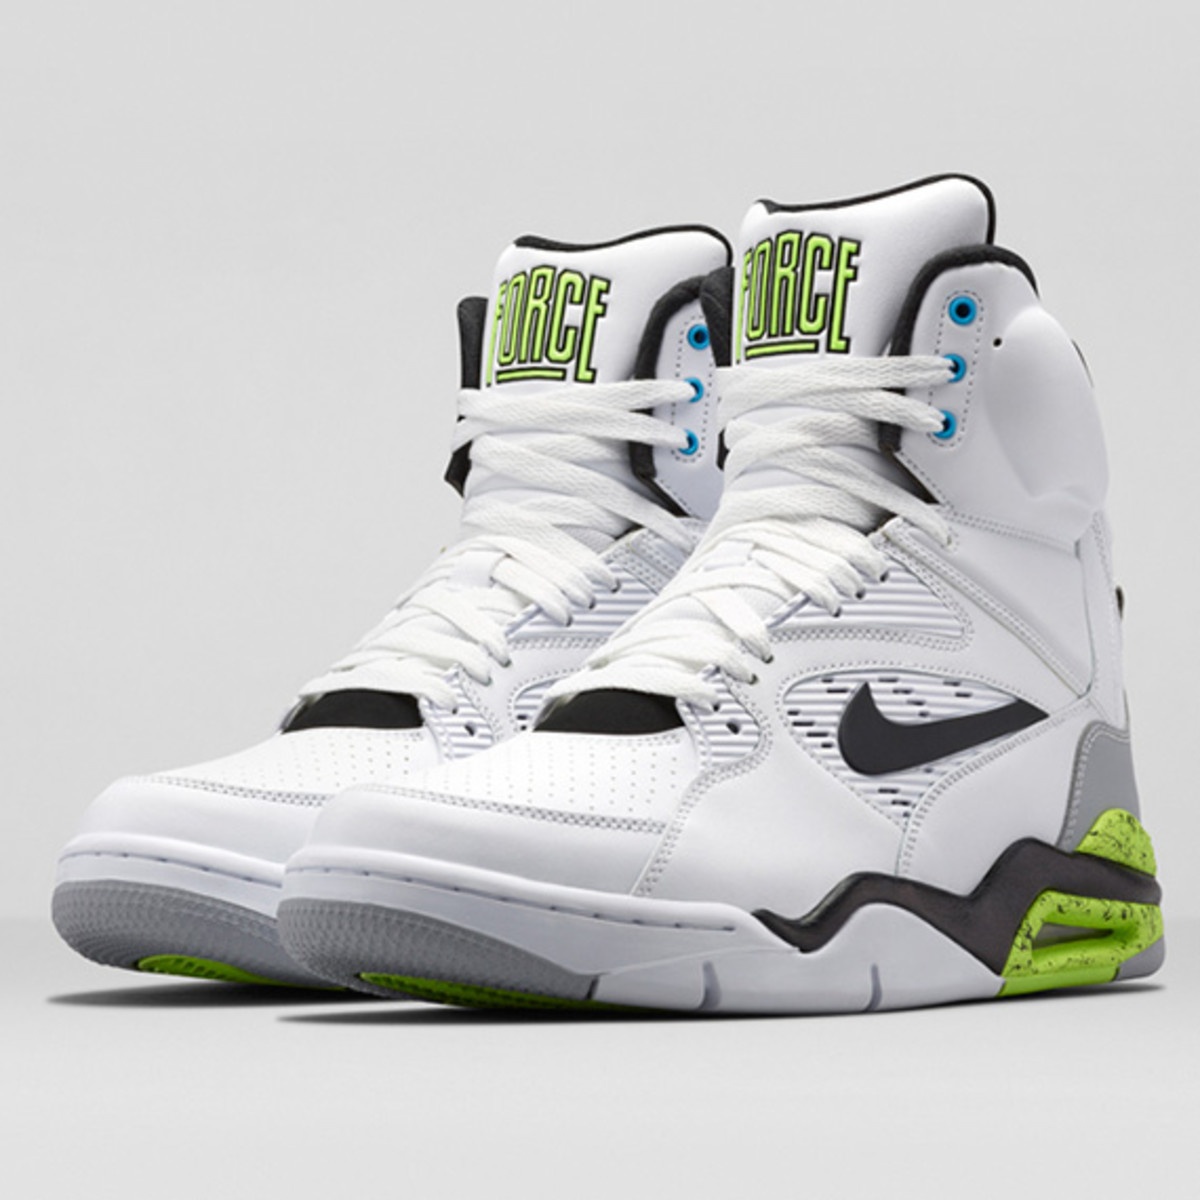 pas mal 7b975 c8637 Nike Air Command Force Retro To Come With Working Air-Fit ...